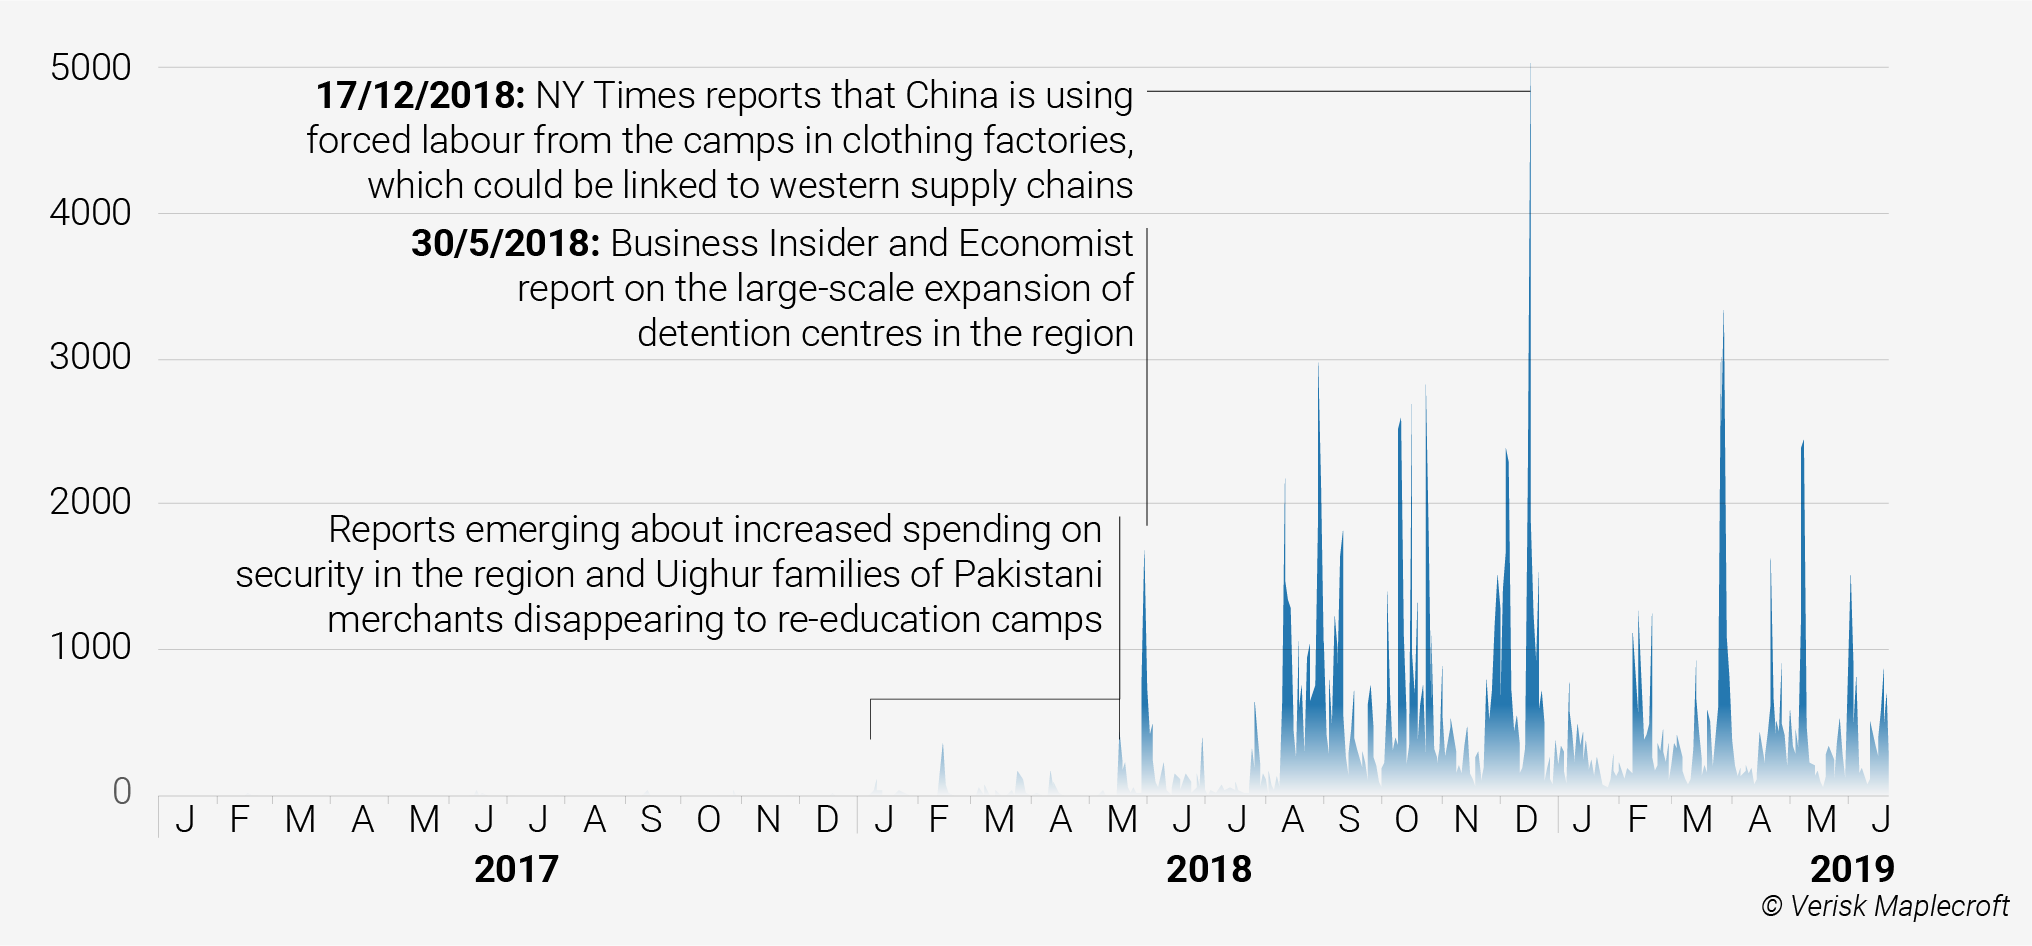 Twitter mentions of forced labour in Xinjiang reveal risks for apparel companies